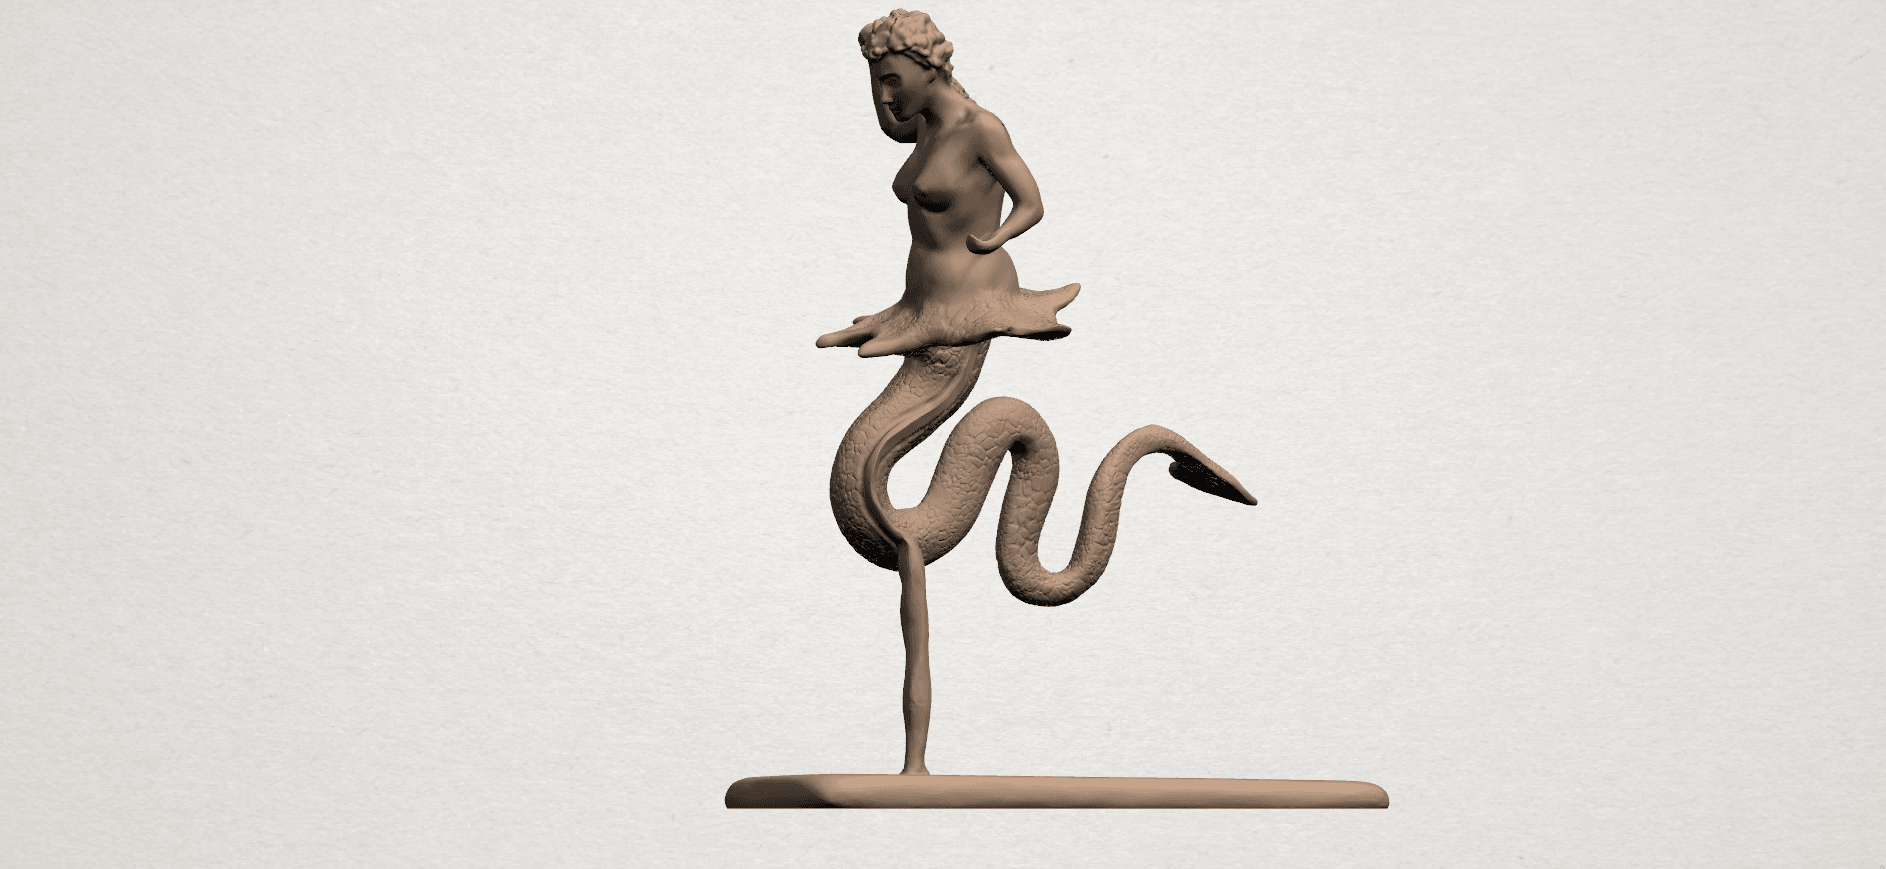 Ophidian A05.png Download free STL file Ophidian • 3D printing template, GeorgesNikkei